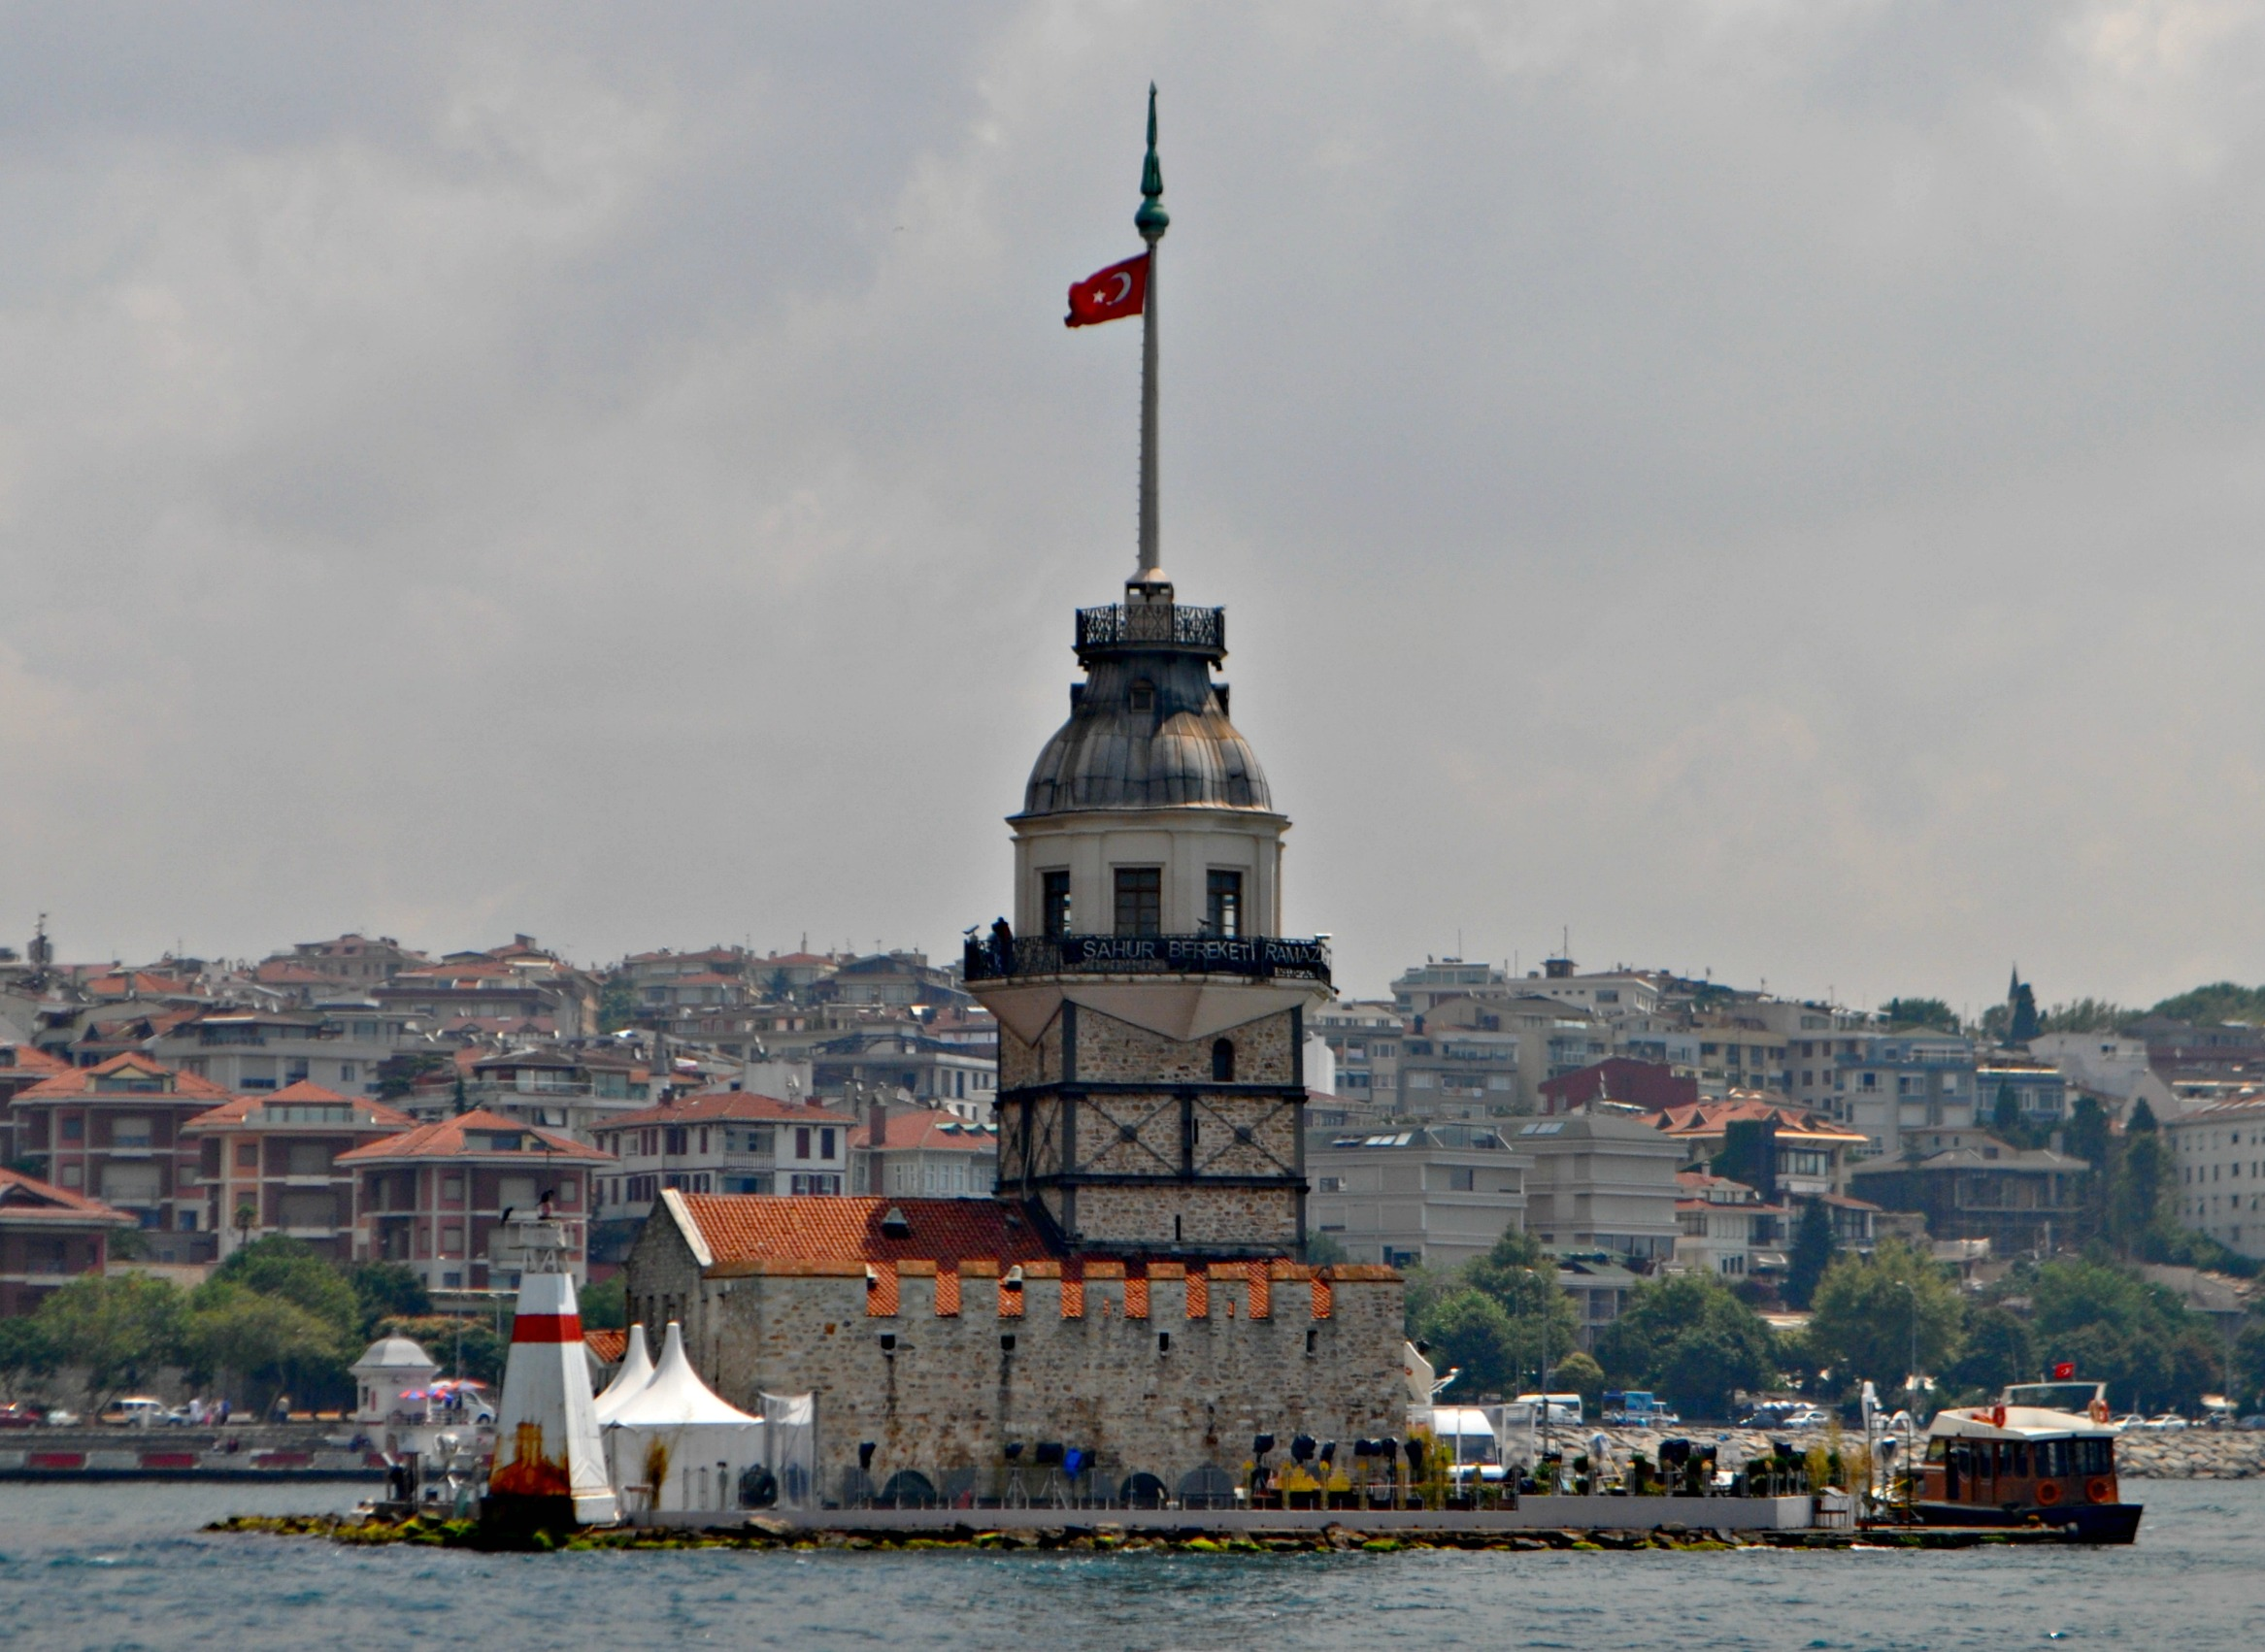 A close up of the Maiden's Tower.